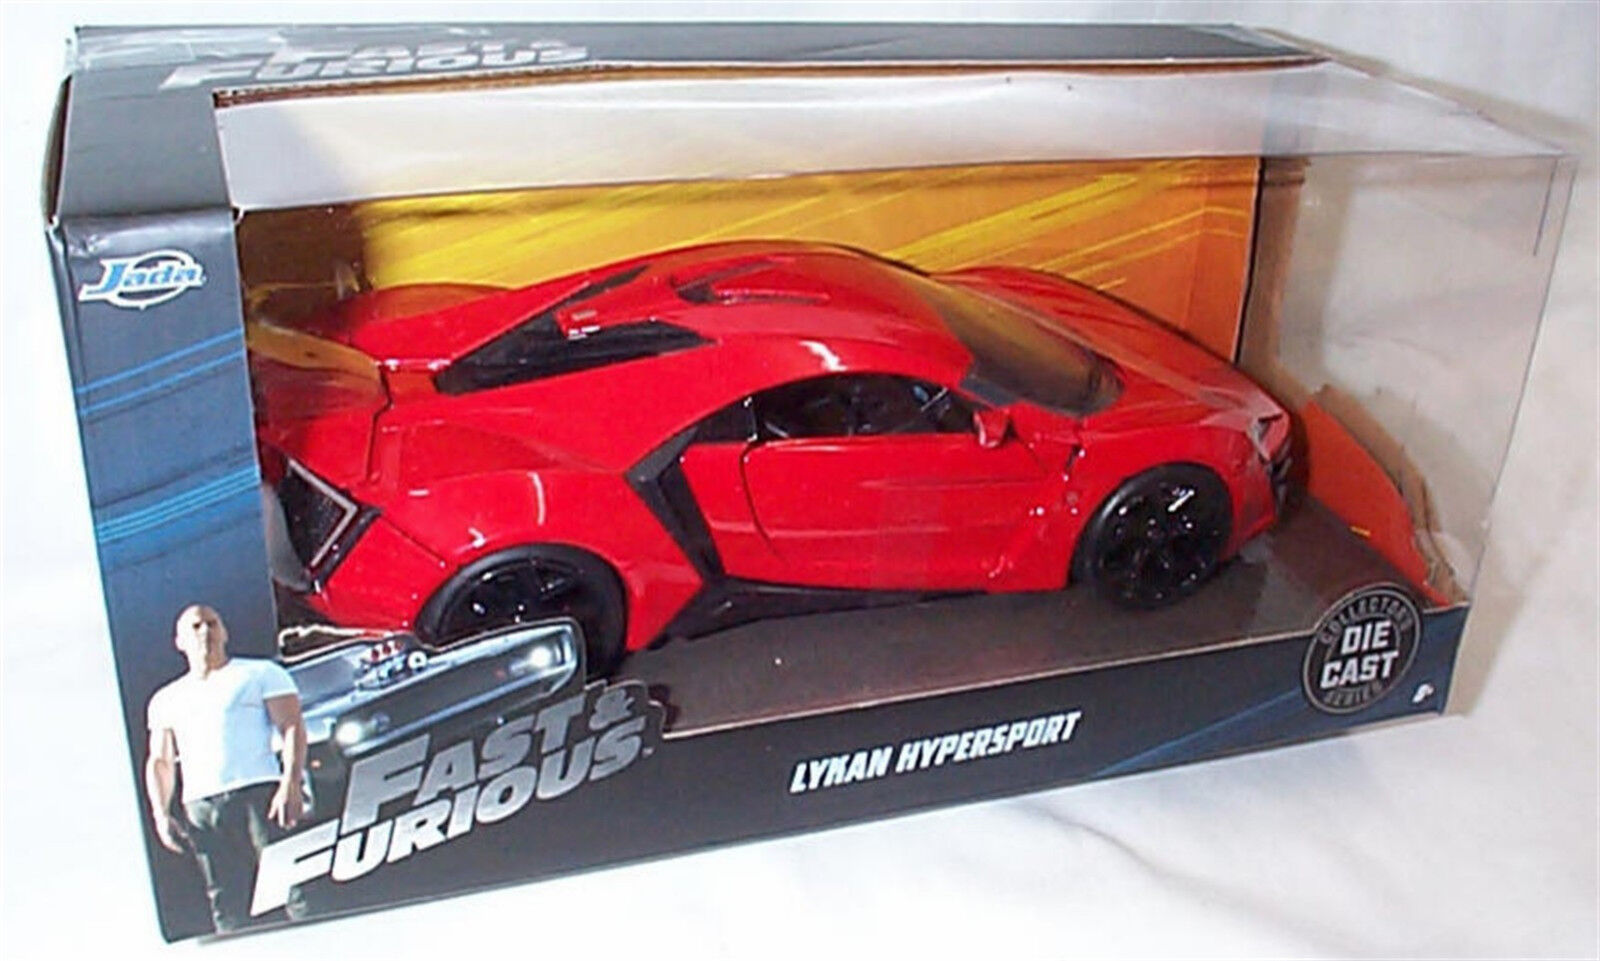 FAST & FURIOUS LYKAN hYPERSPORT 1 24 SCALE DIECAST OPENING FEATURES NEW IN BOX